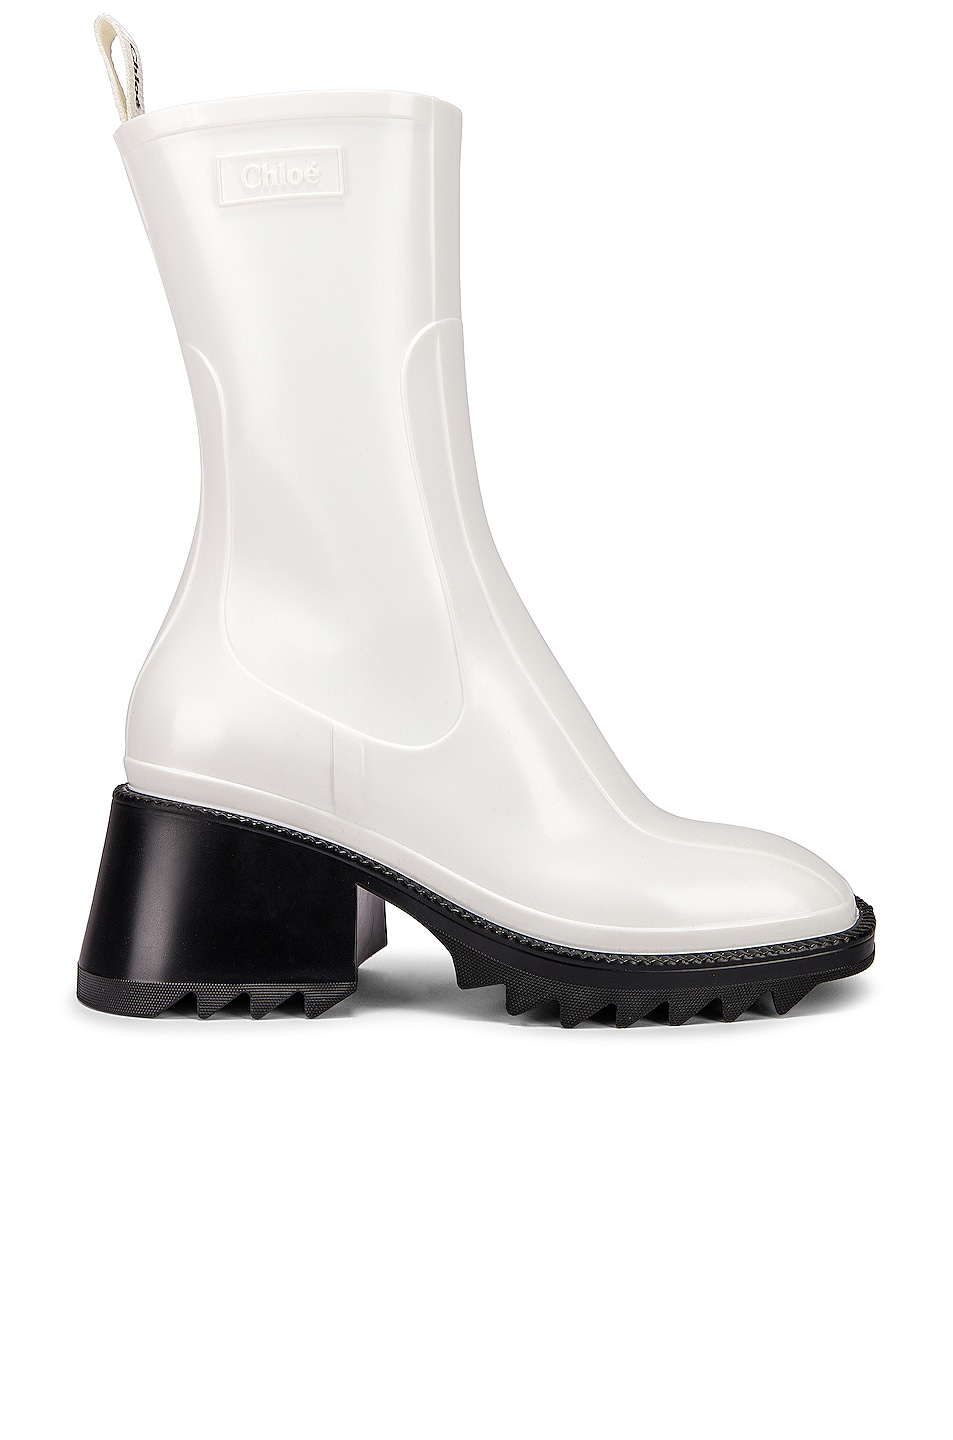 Image 1 of Chloe Betty Boots in White